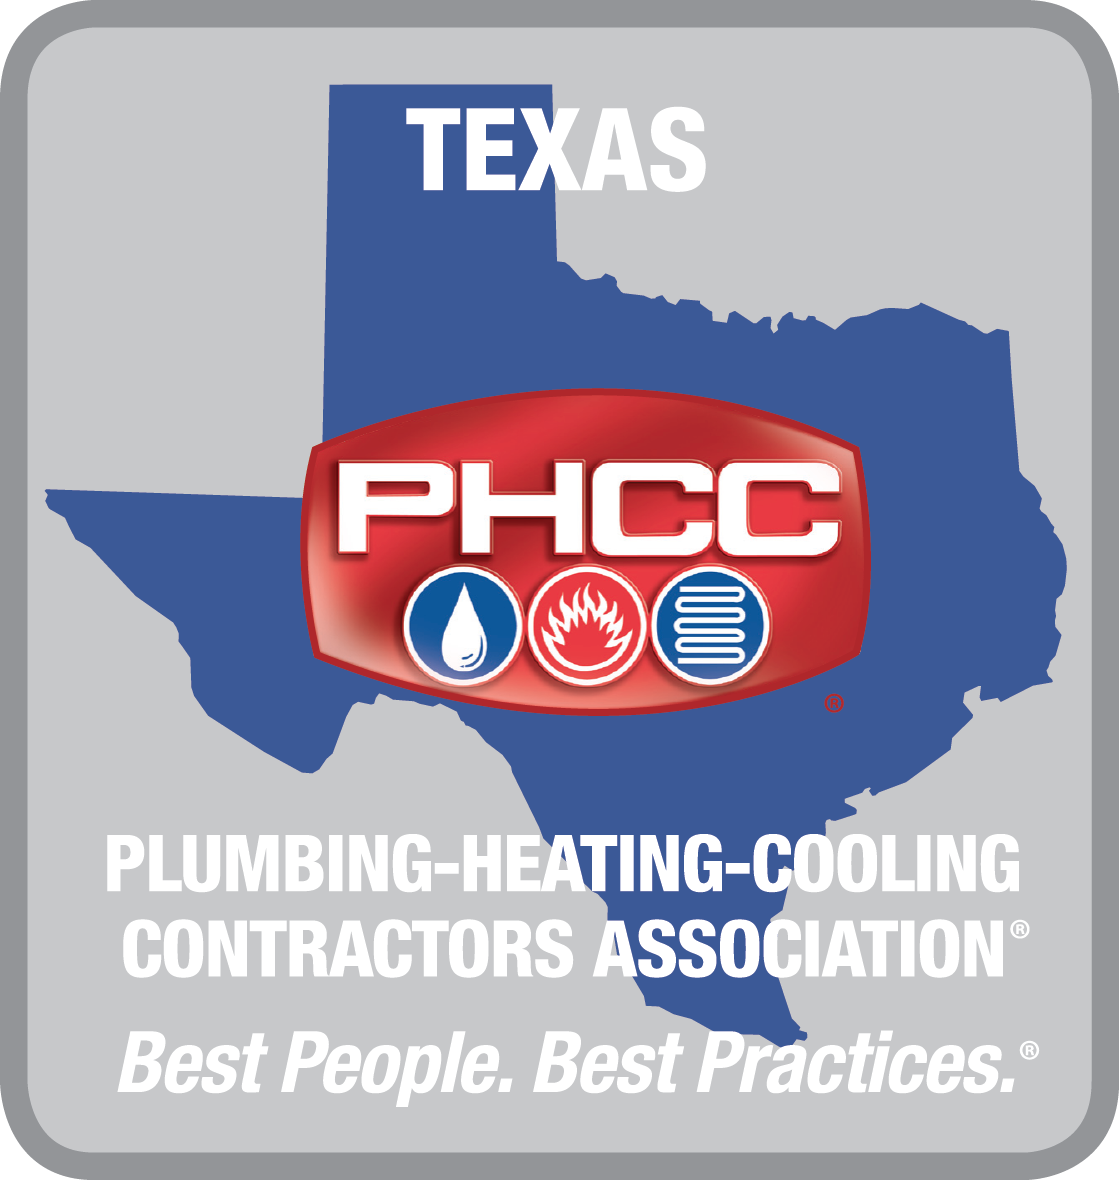 Plumbing, Heating, Cooling